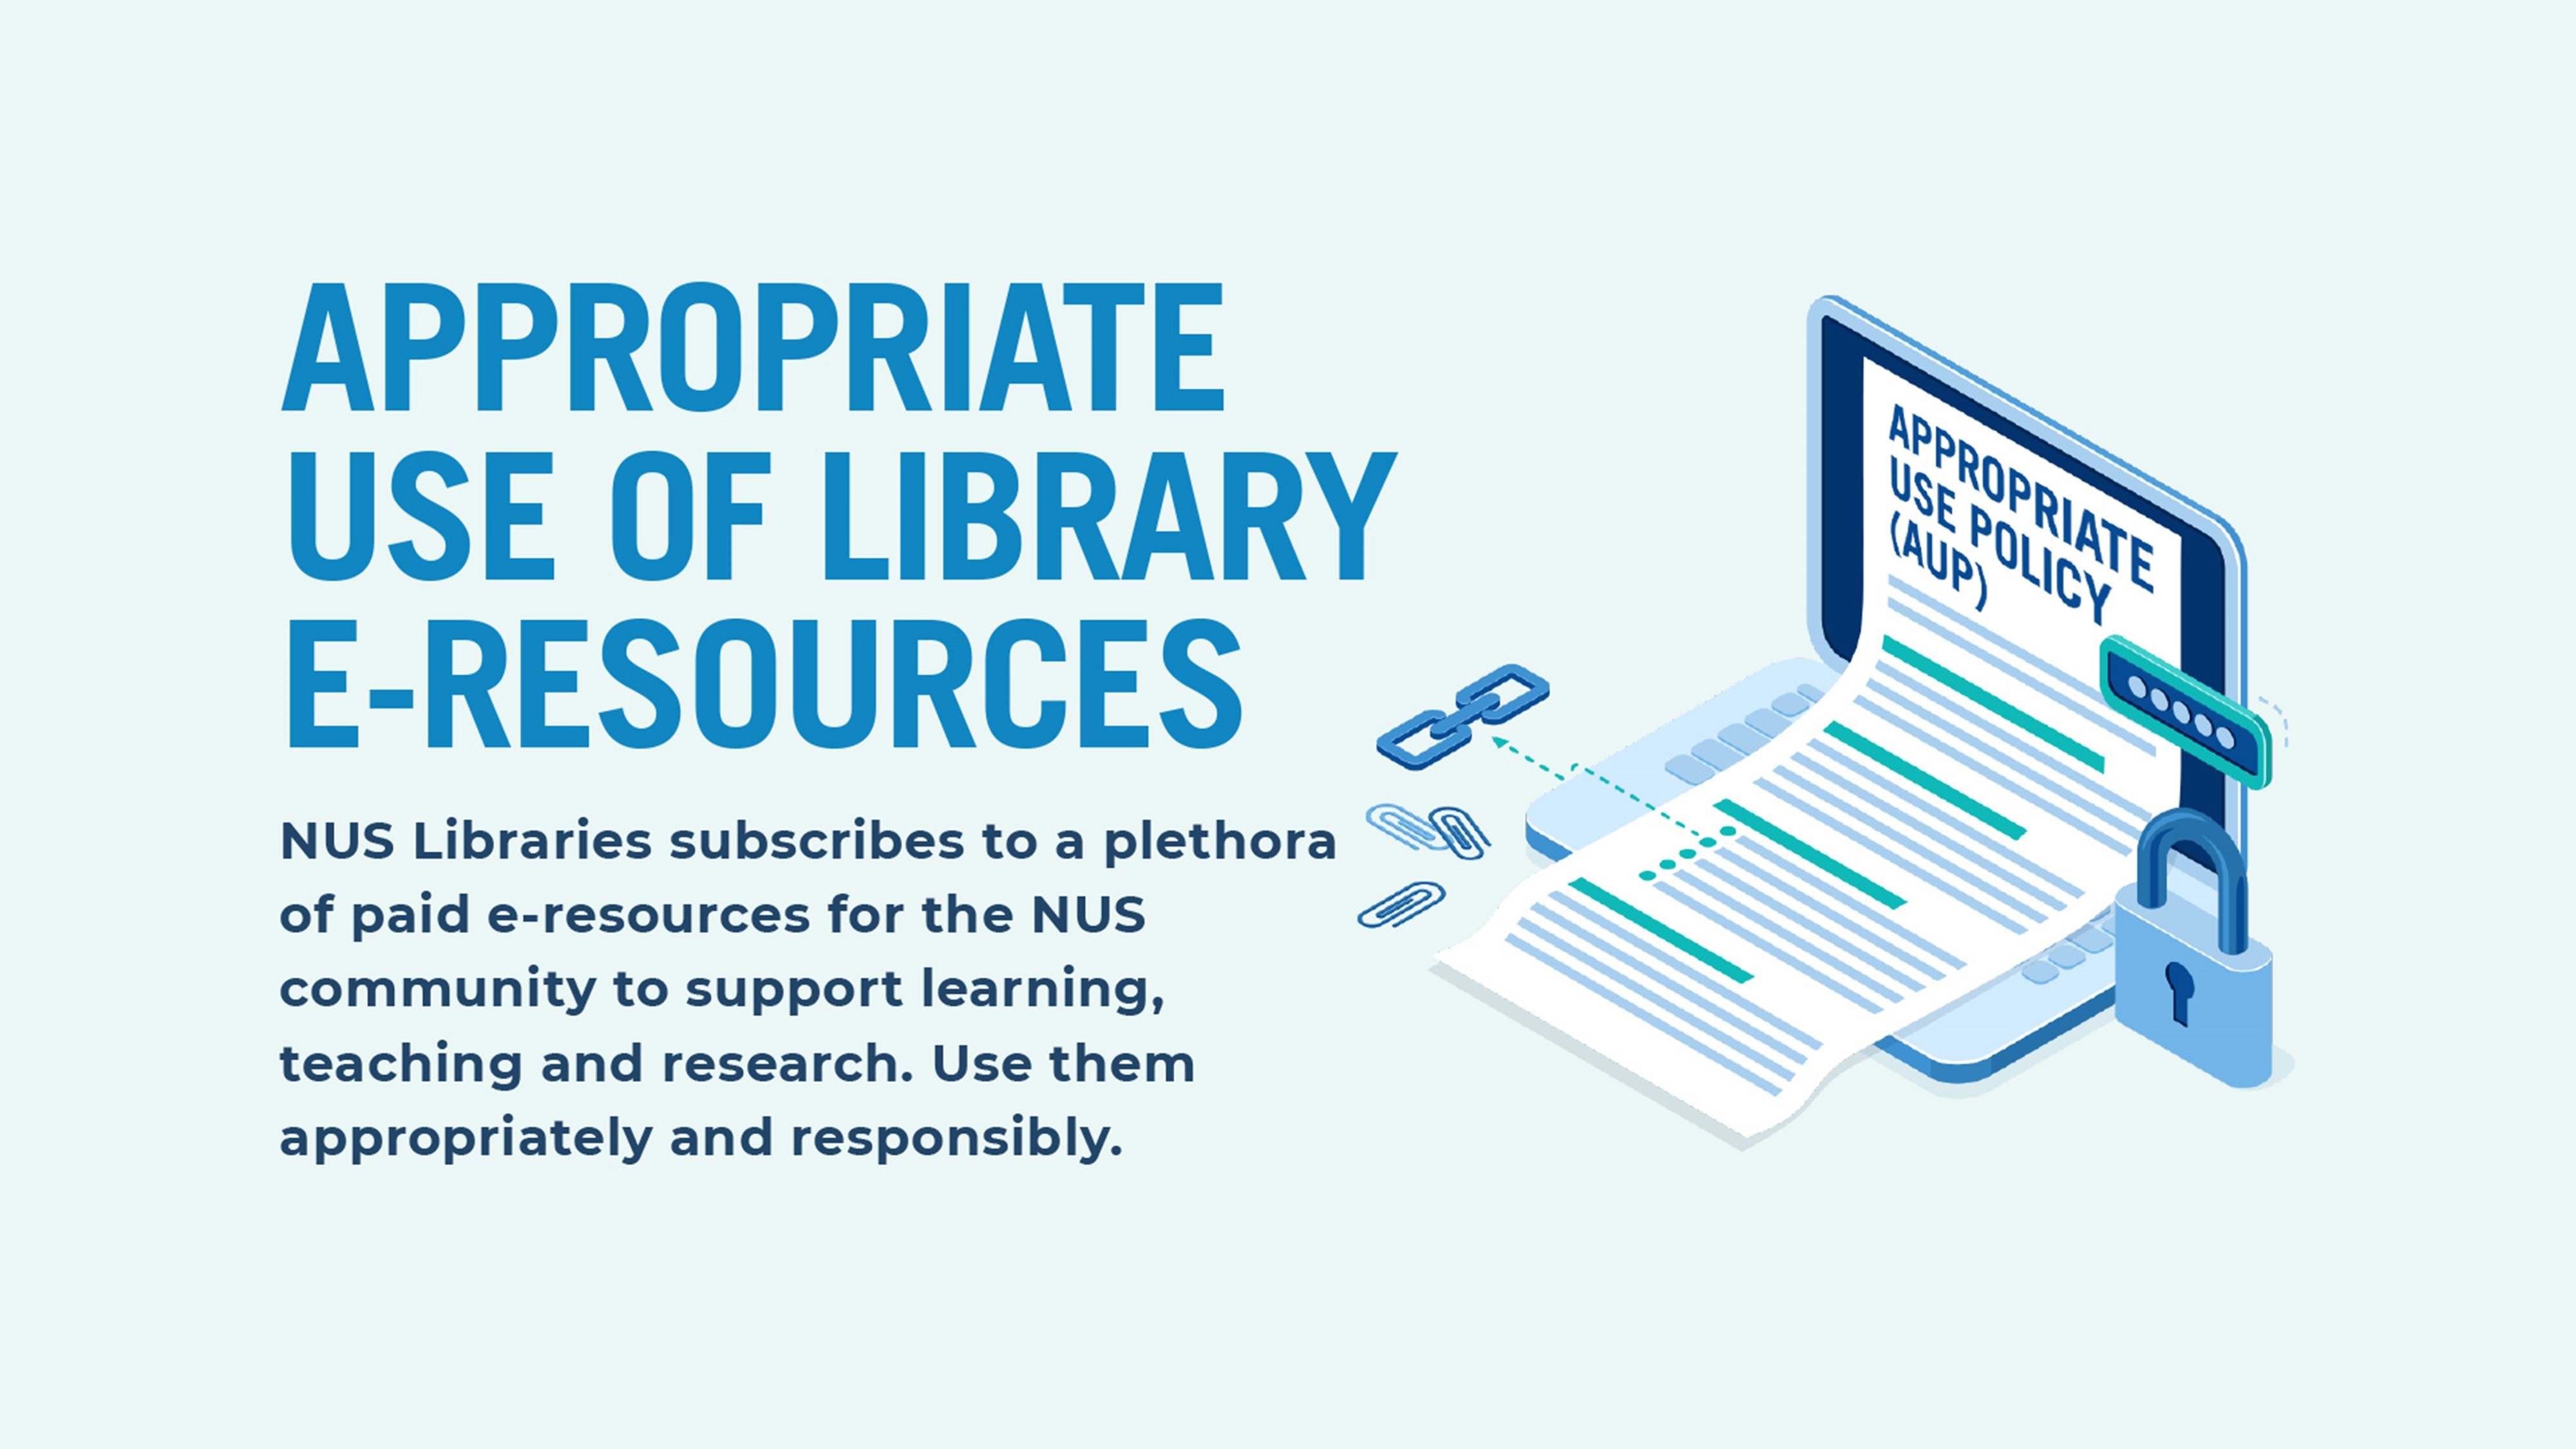 Use library e-resources responsibly